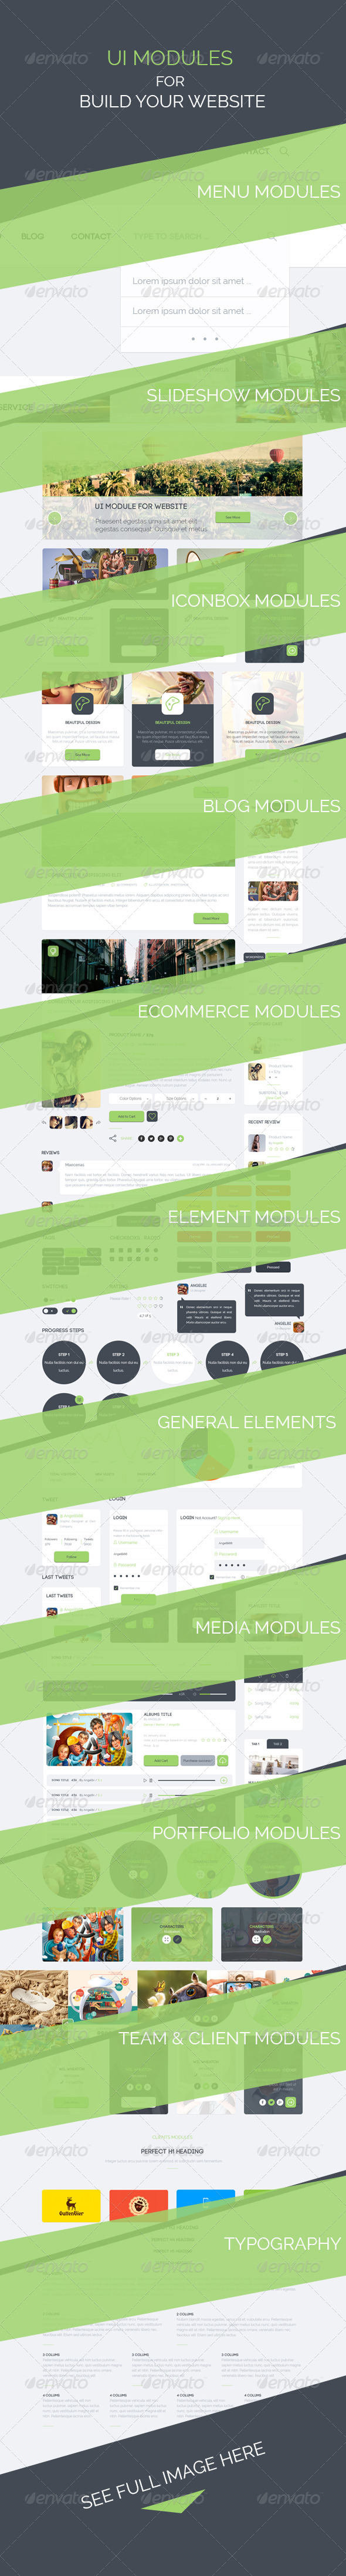 GraphicRiver UI Modules for Build Websites 6562351